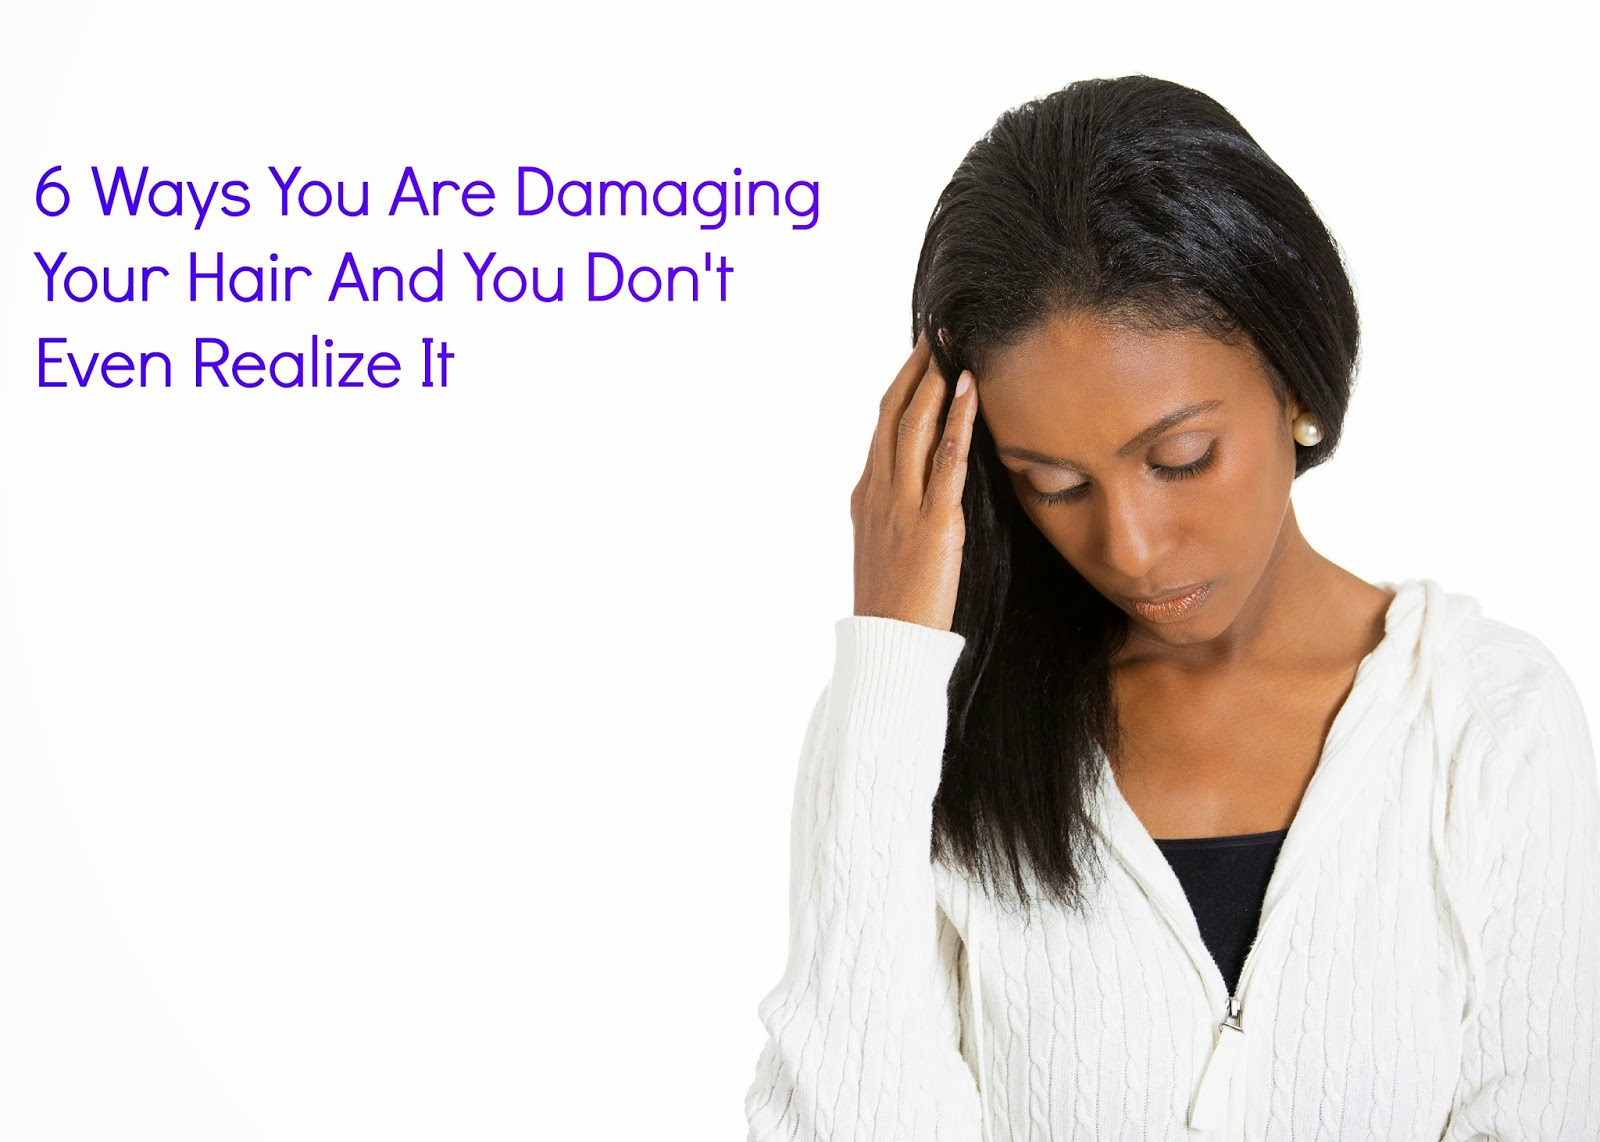 6 Ways You Are Damaging Your Hair And You Don't Even Realize It